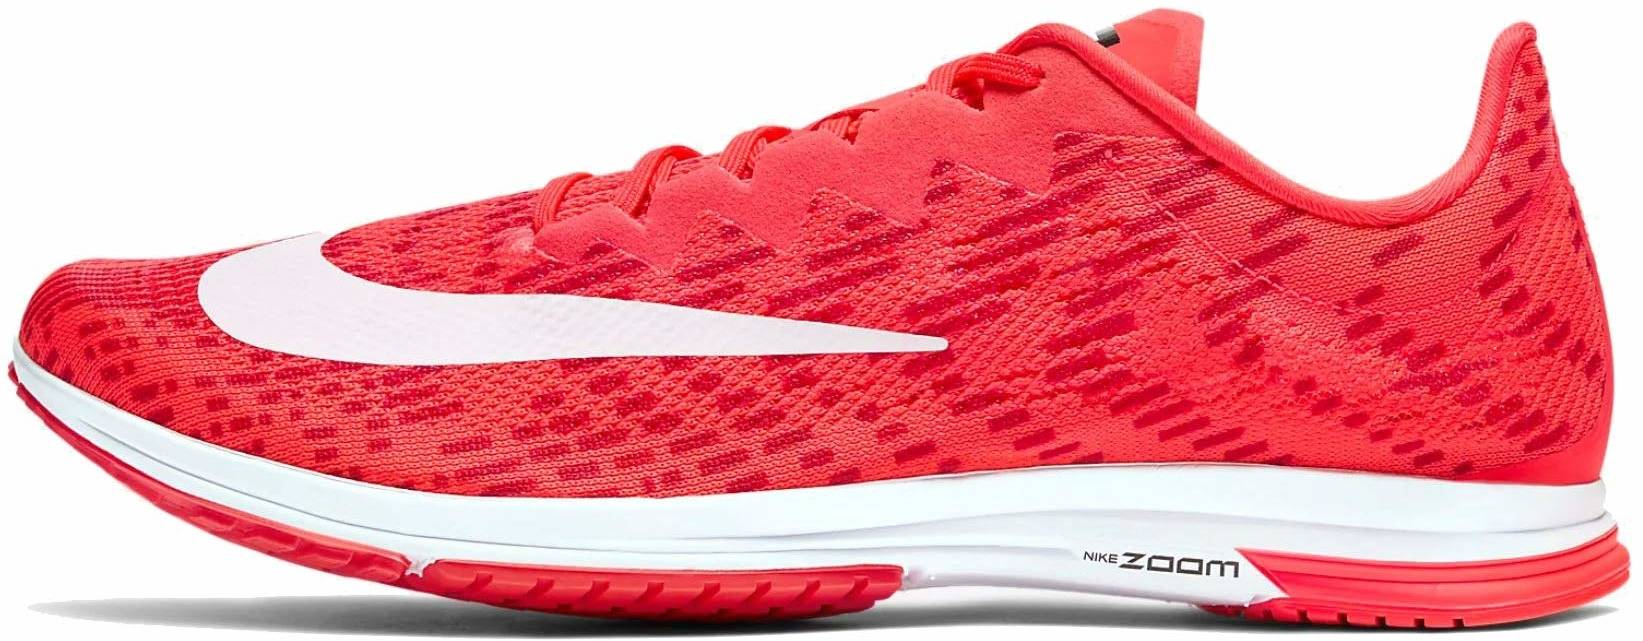 Orador Malentendido Restringir  $90 + Review of Nike Air Zoom Streak LT 4 | RunRepeat